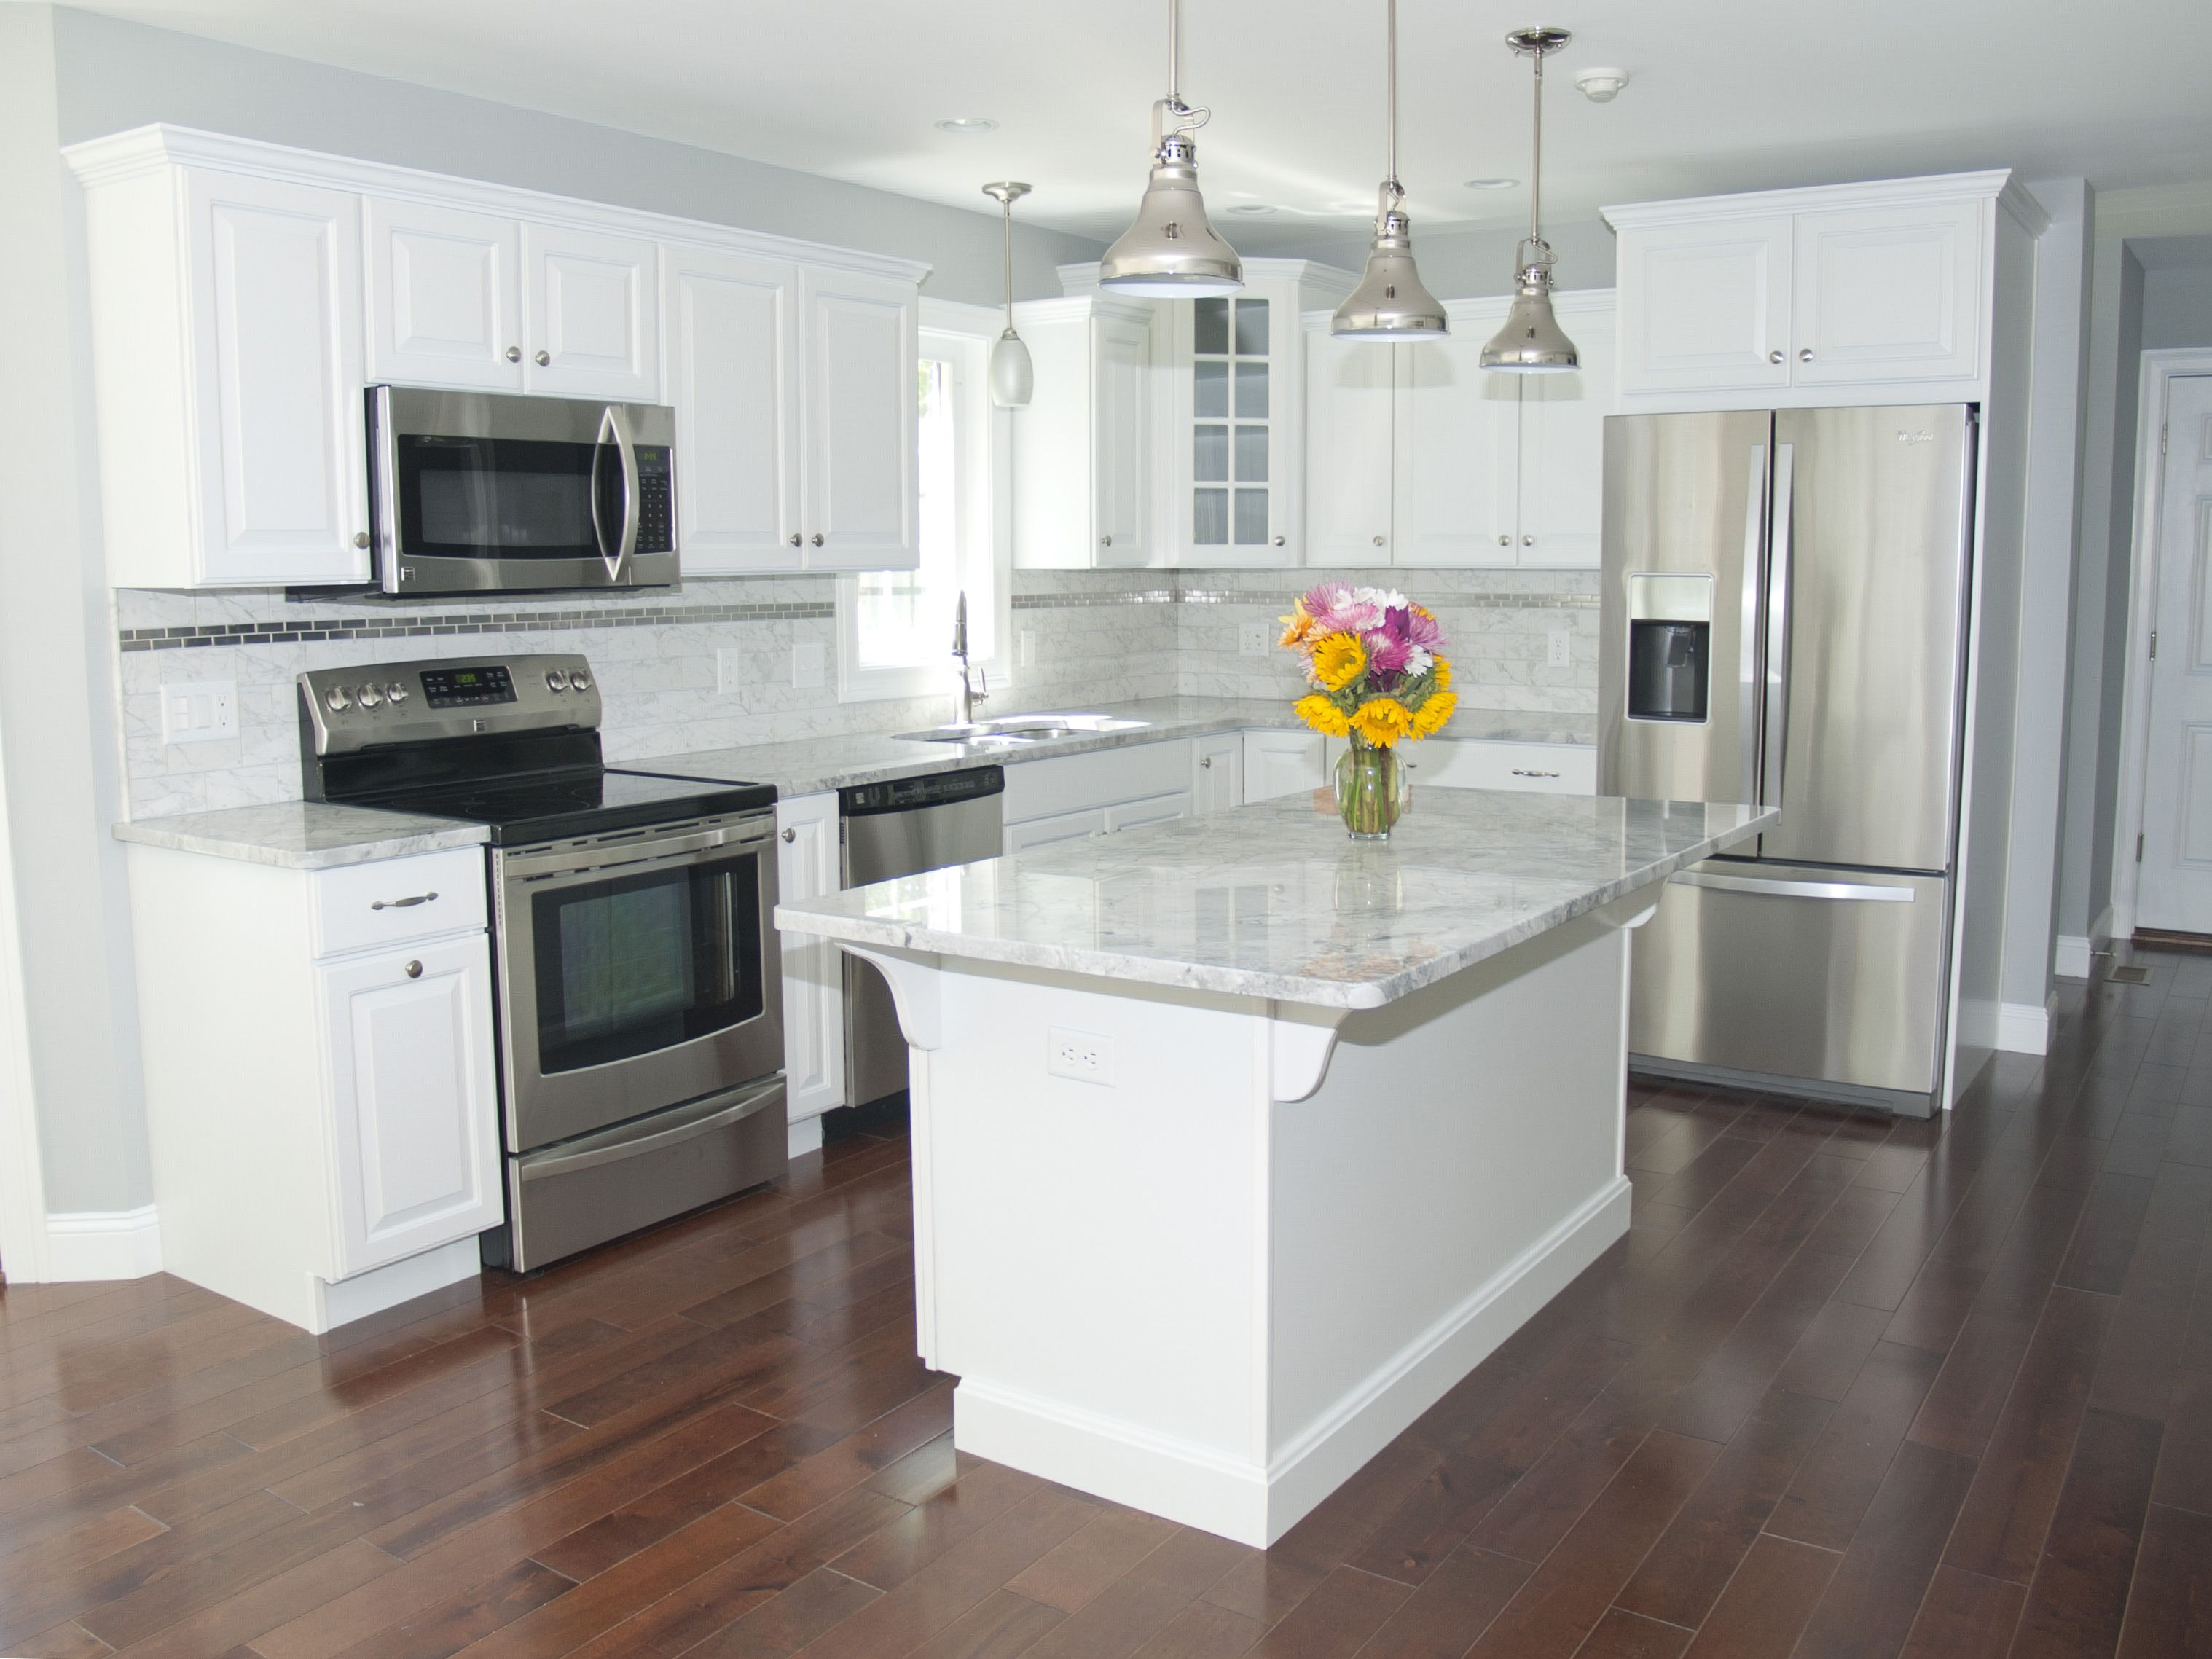 Kitchen Design White Cabinets Stainless Appliances. Gorgeous Modern Kitchen  With White Cabinets, Stainless Steel